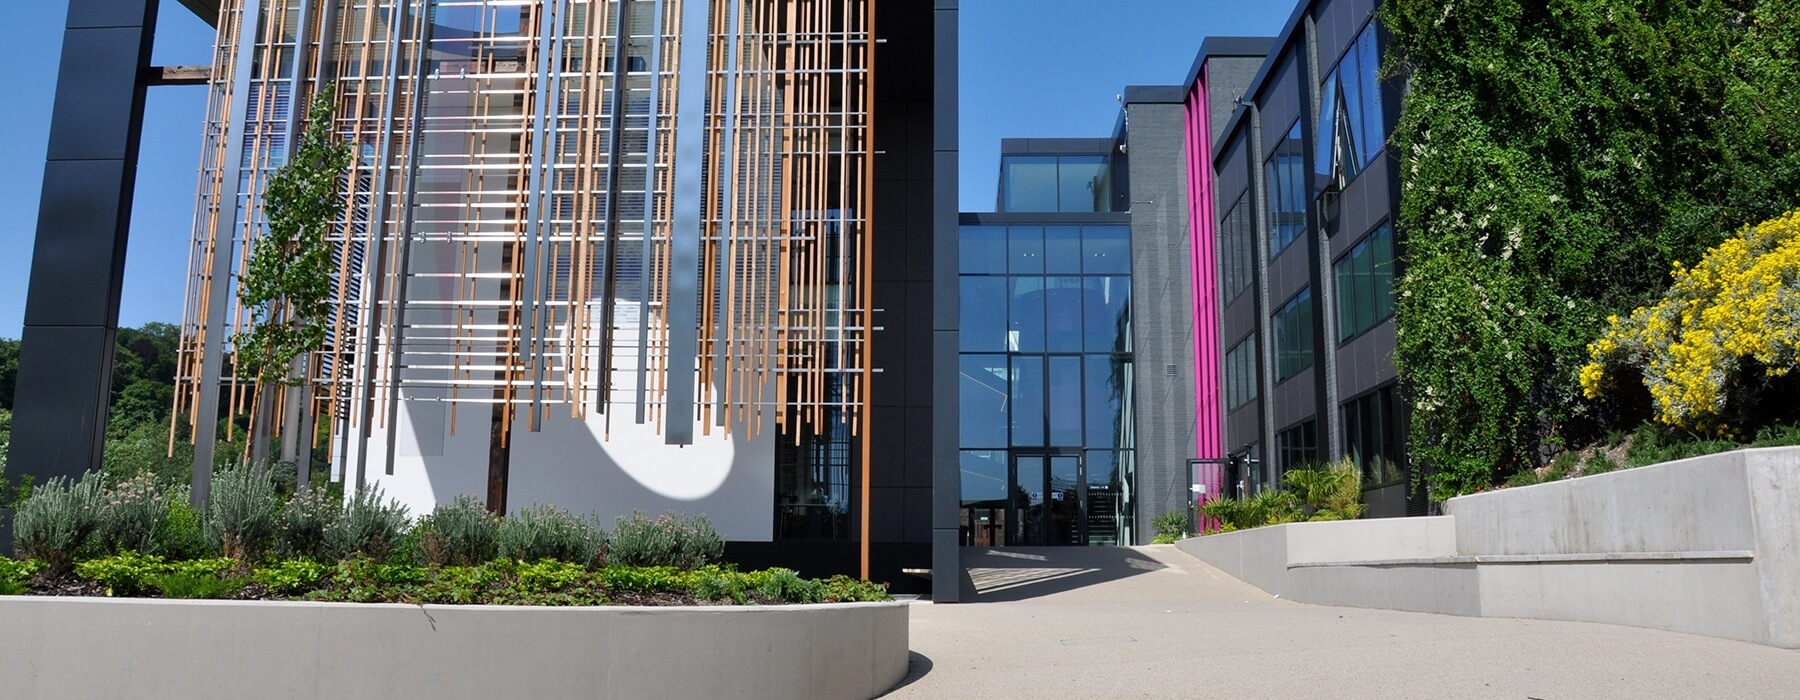 Winchester University sees increase in student recruitment